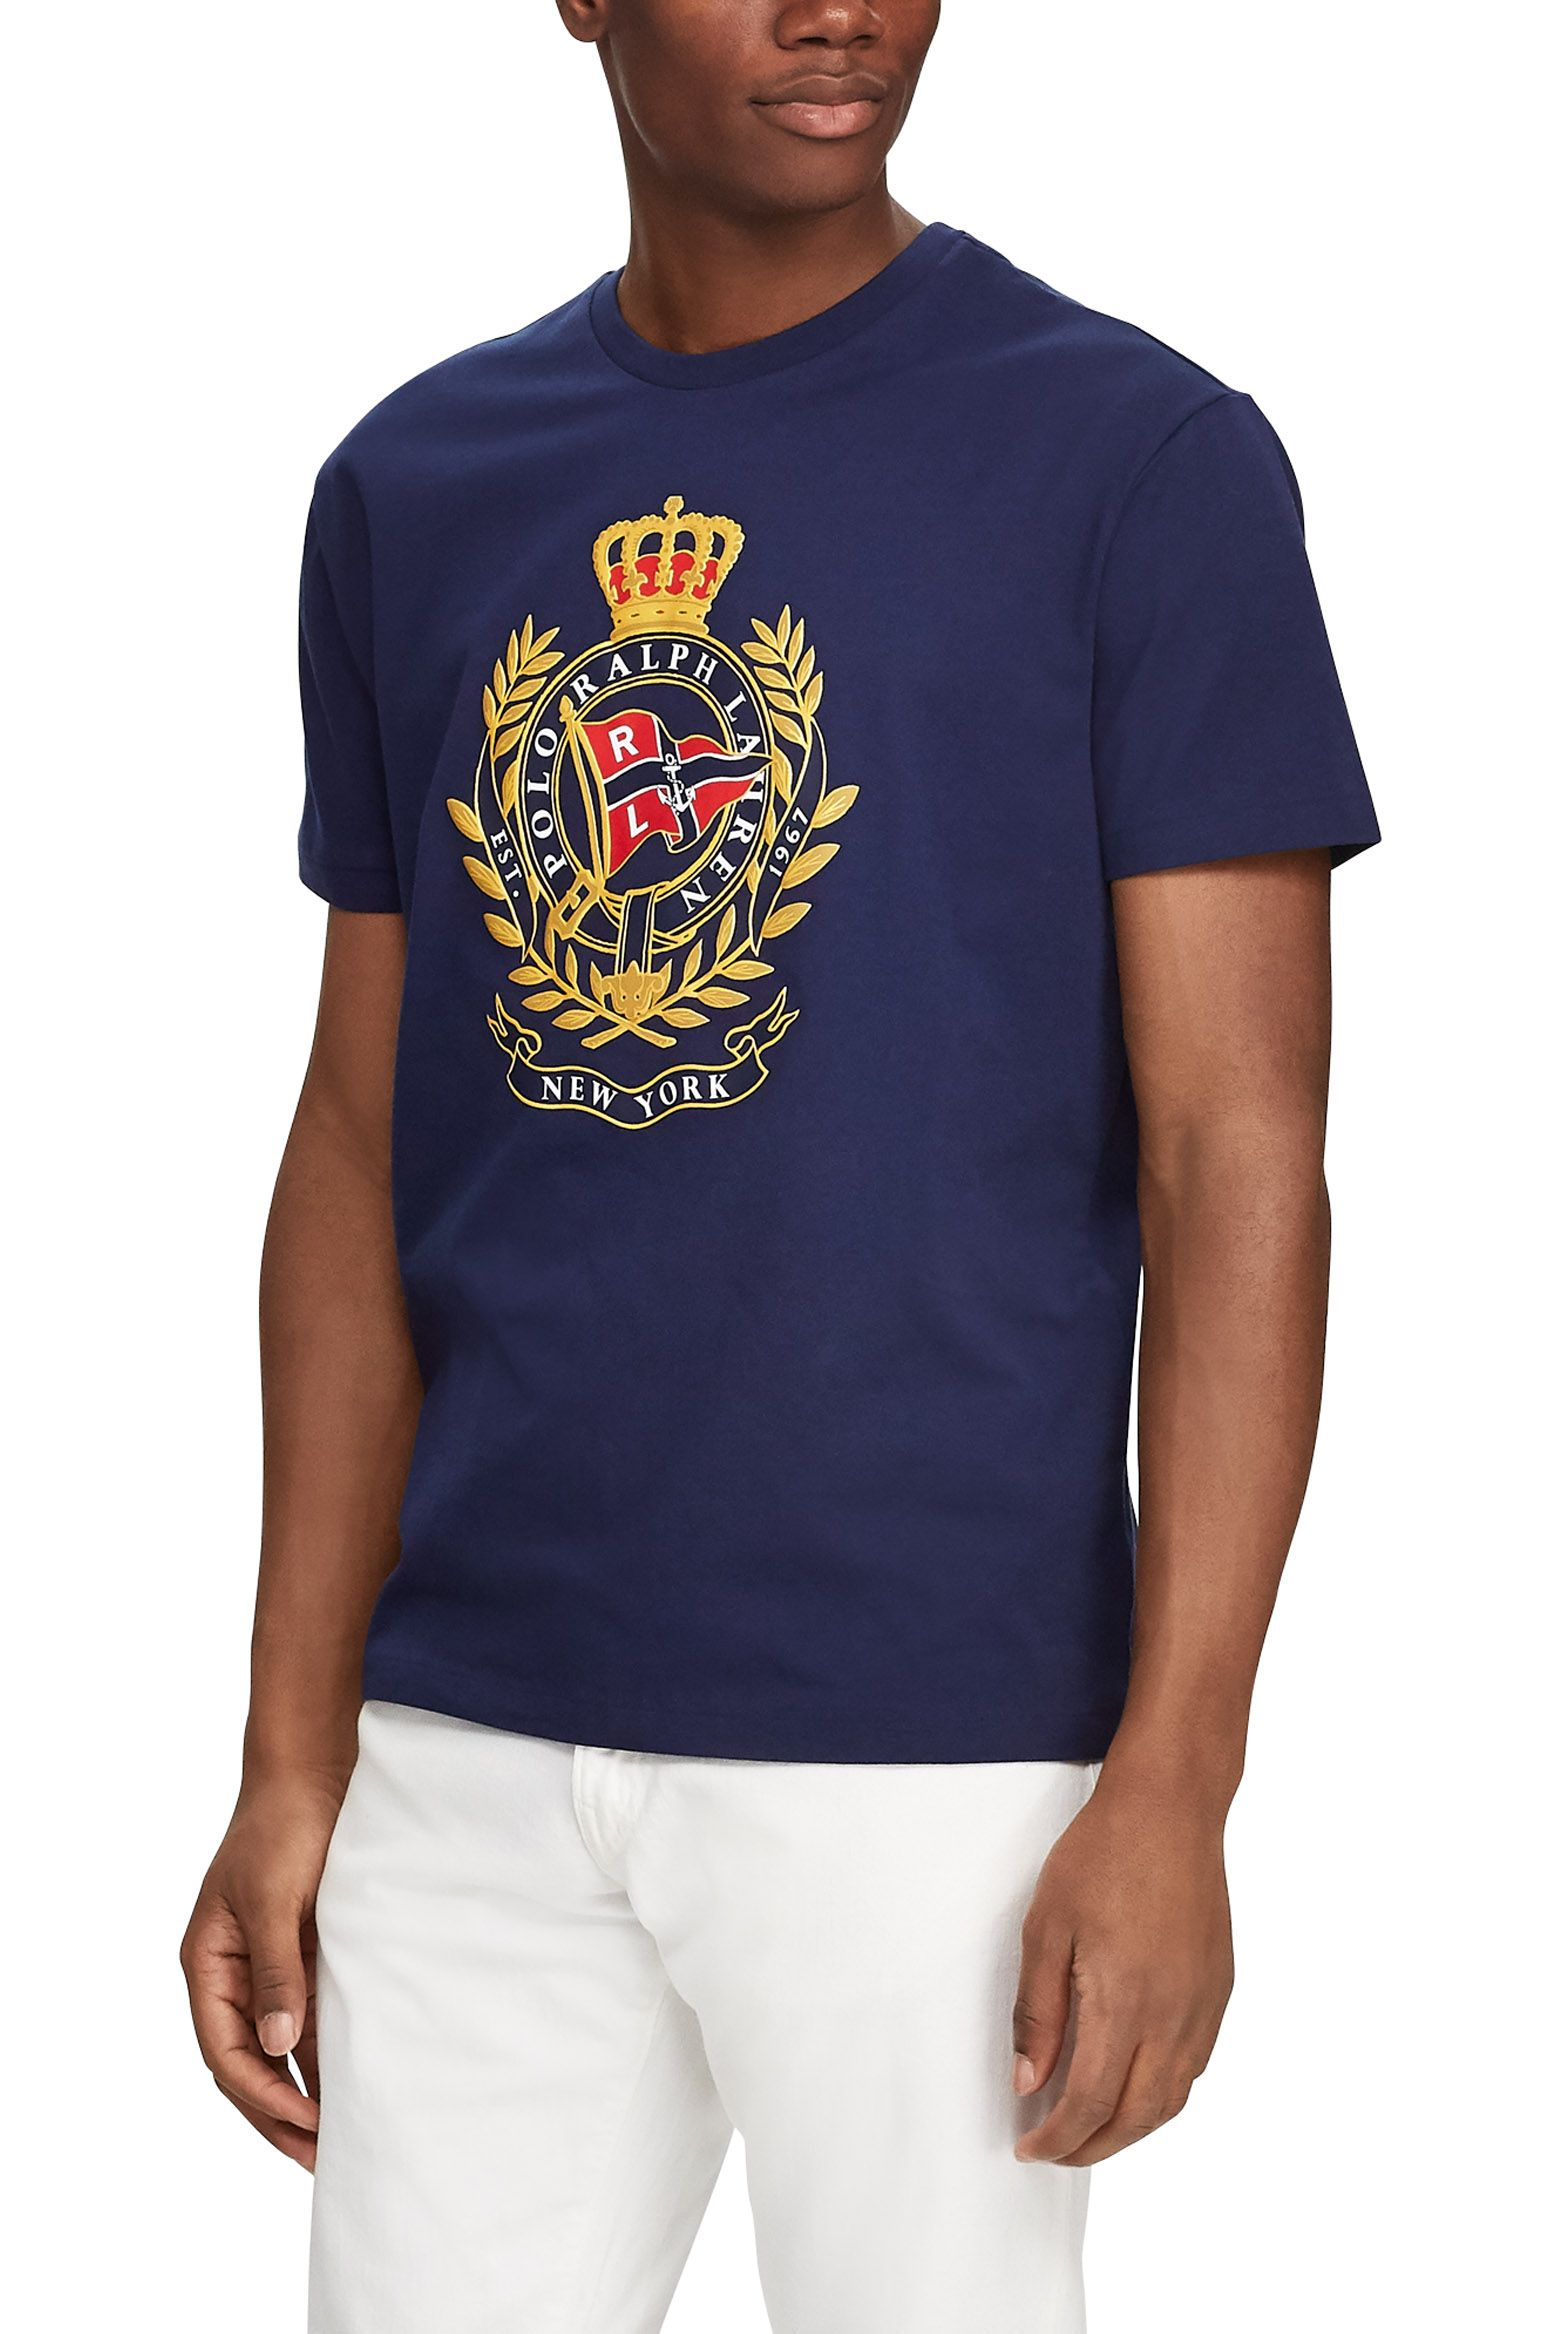 6bca2cac POLO RALPH LAUREN Classic Fit Cotton Graphic Tee | Menswear in 2019 ...